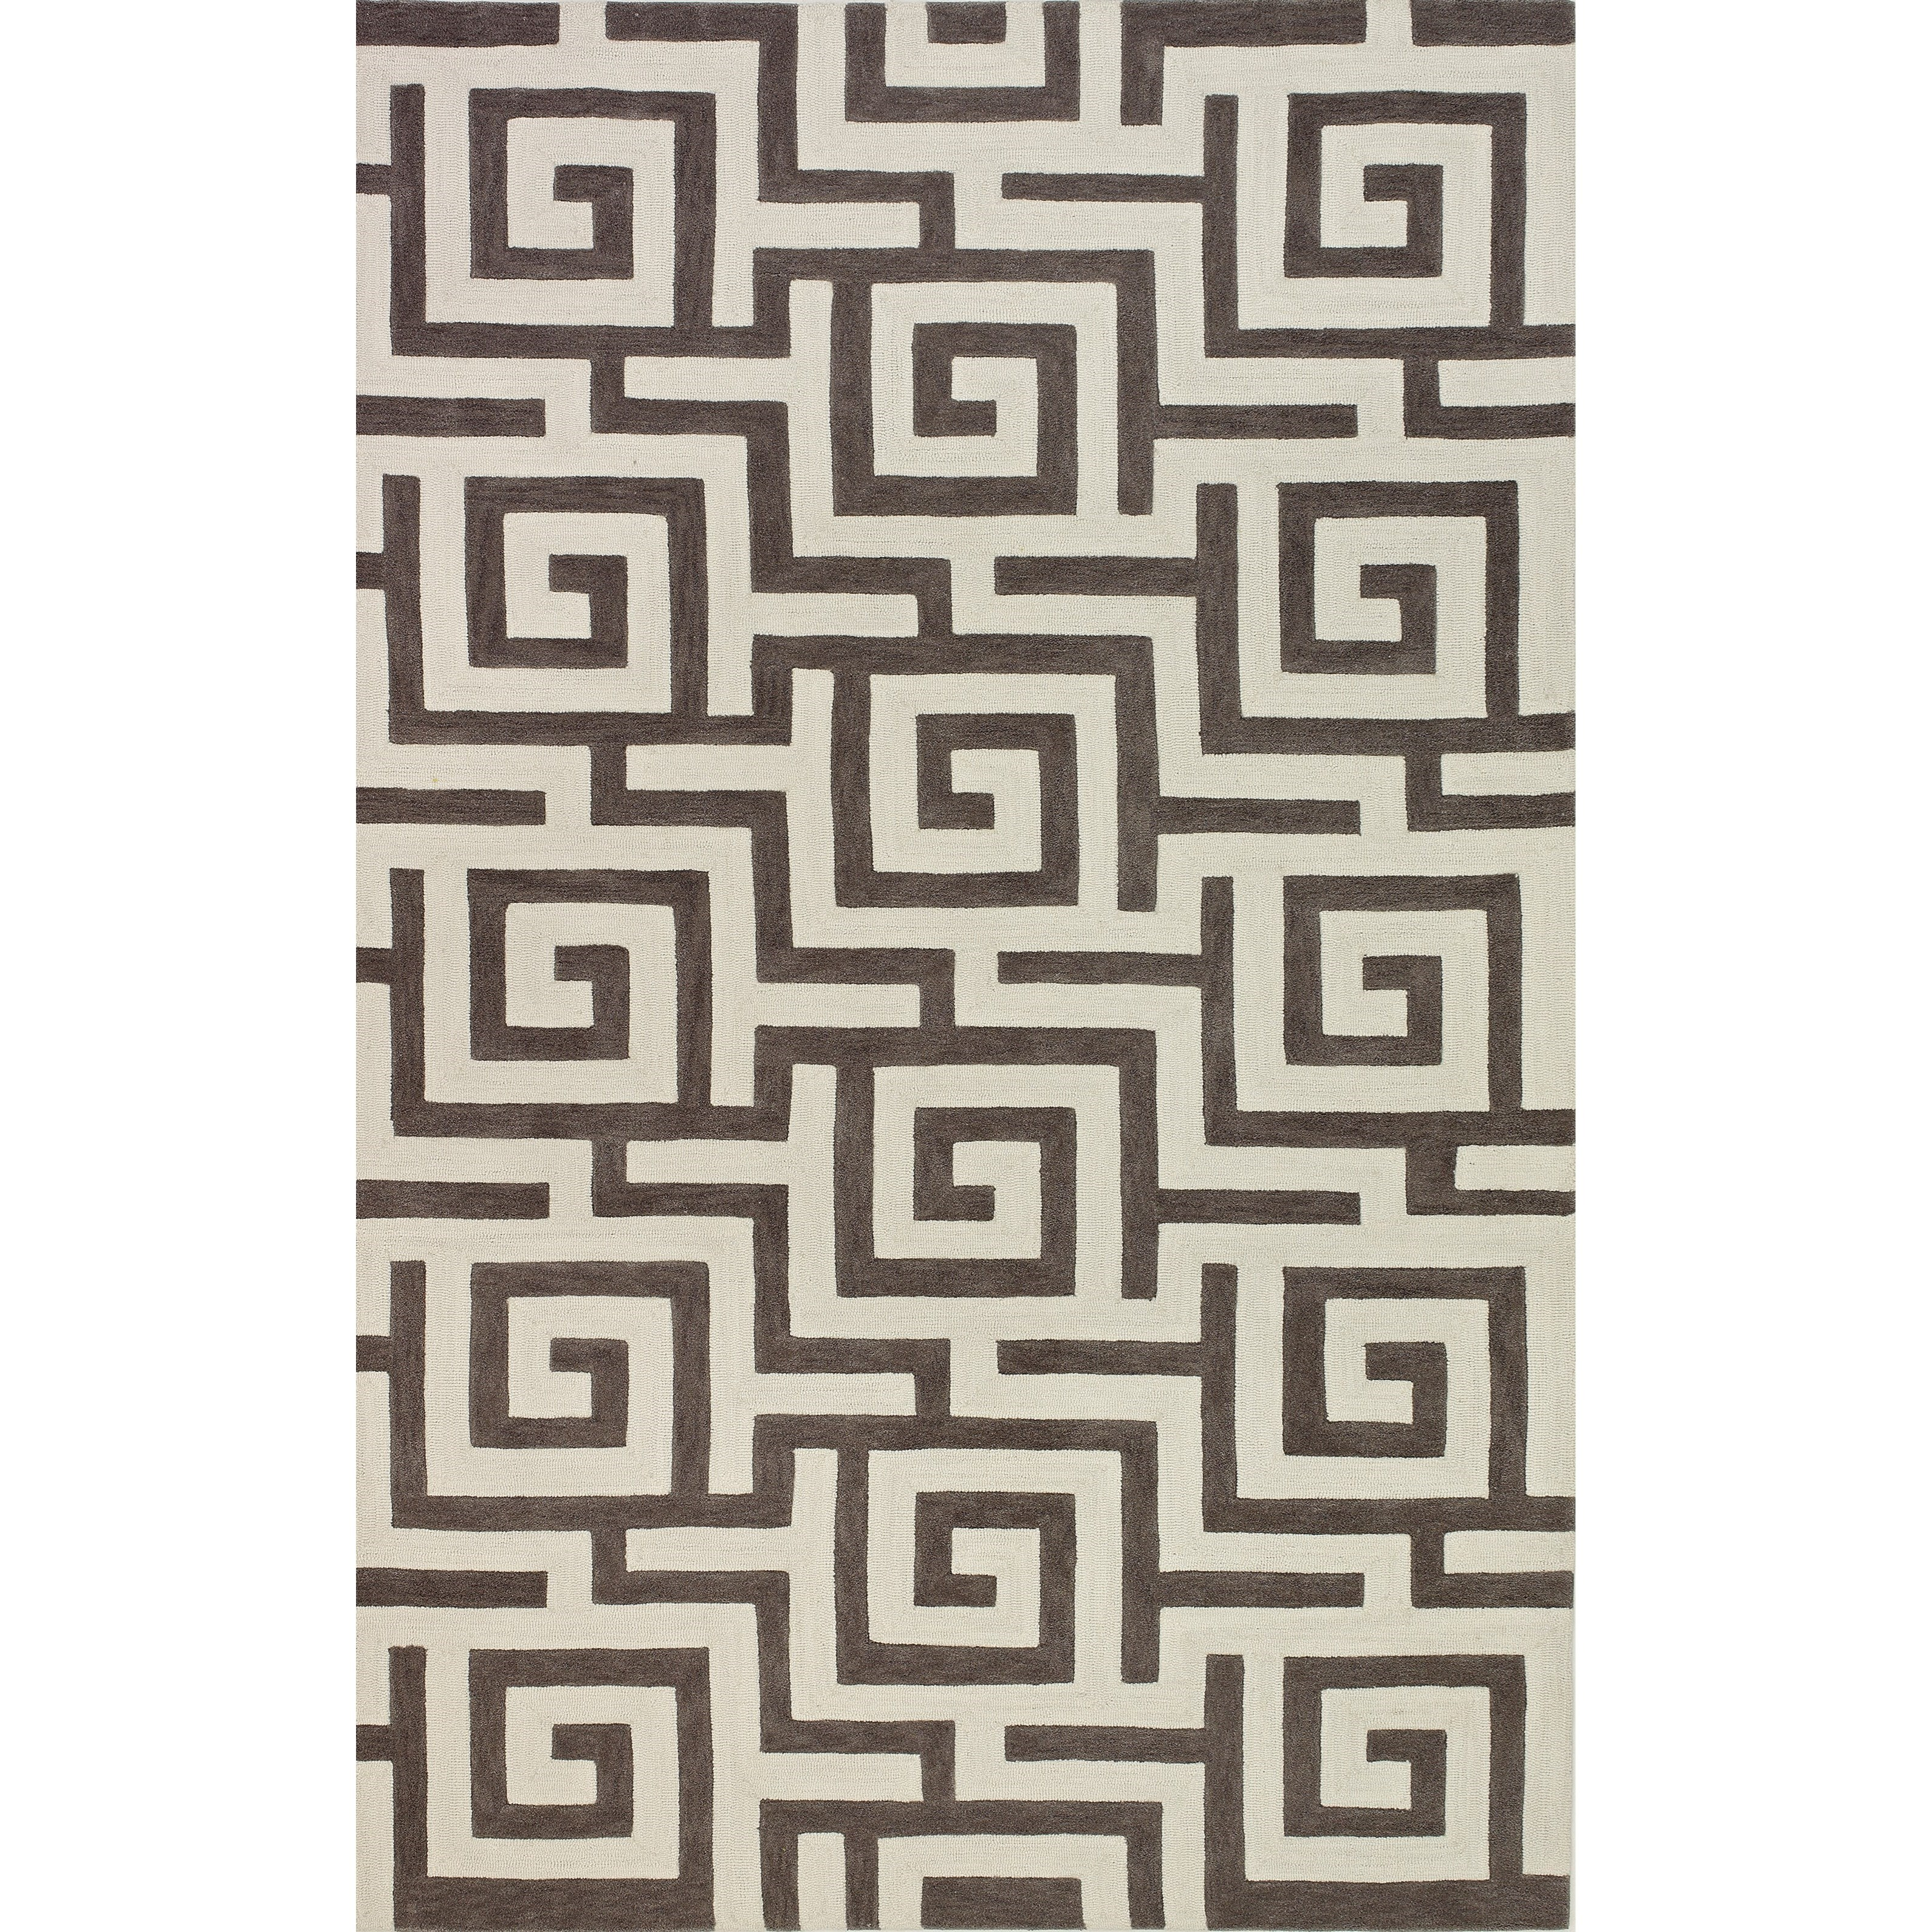 Dalyn Infinity Pewter 9'X13' Rug - Item Number: IF1PE9X13